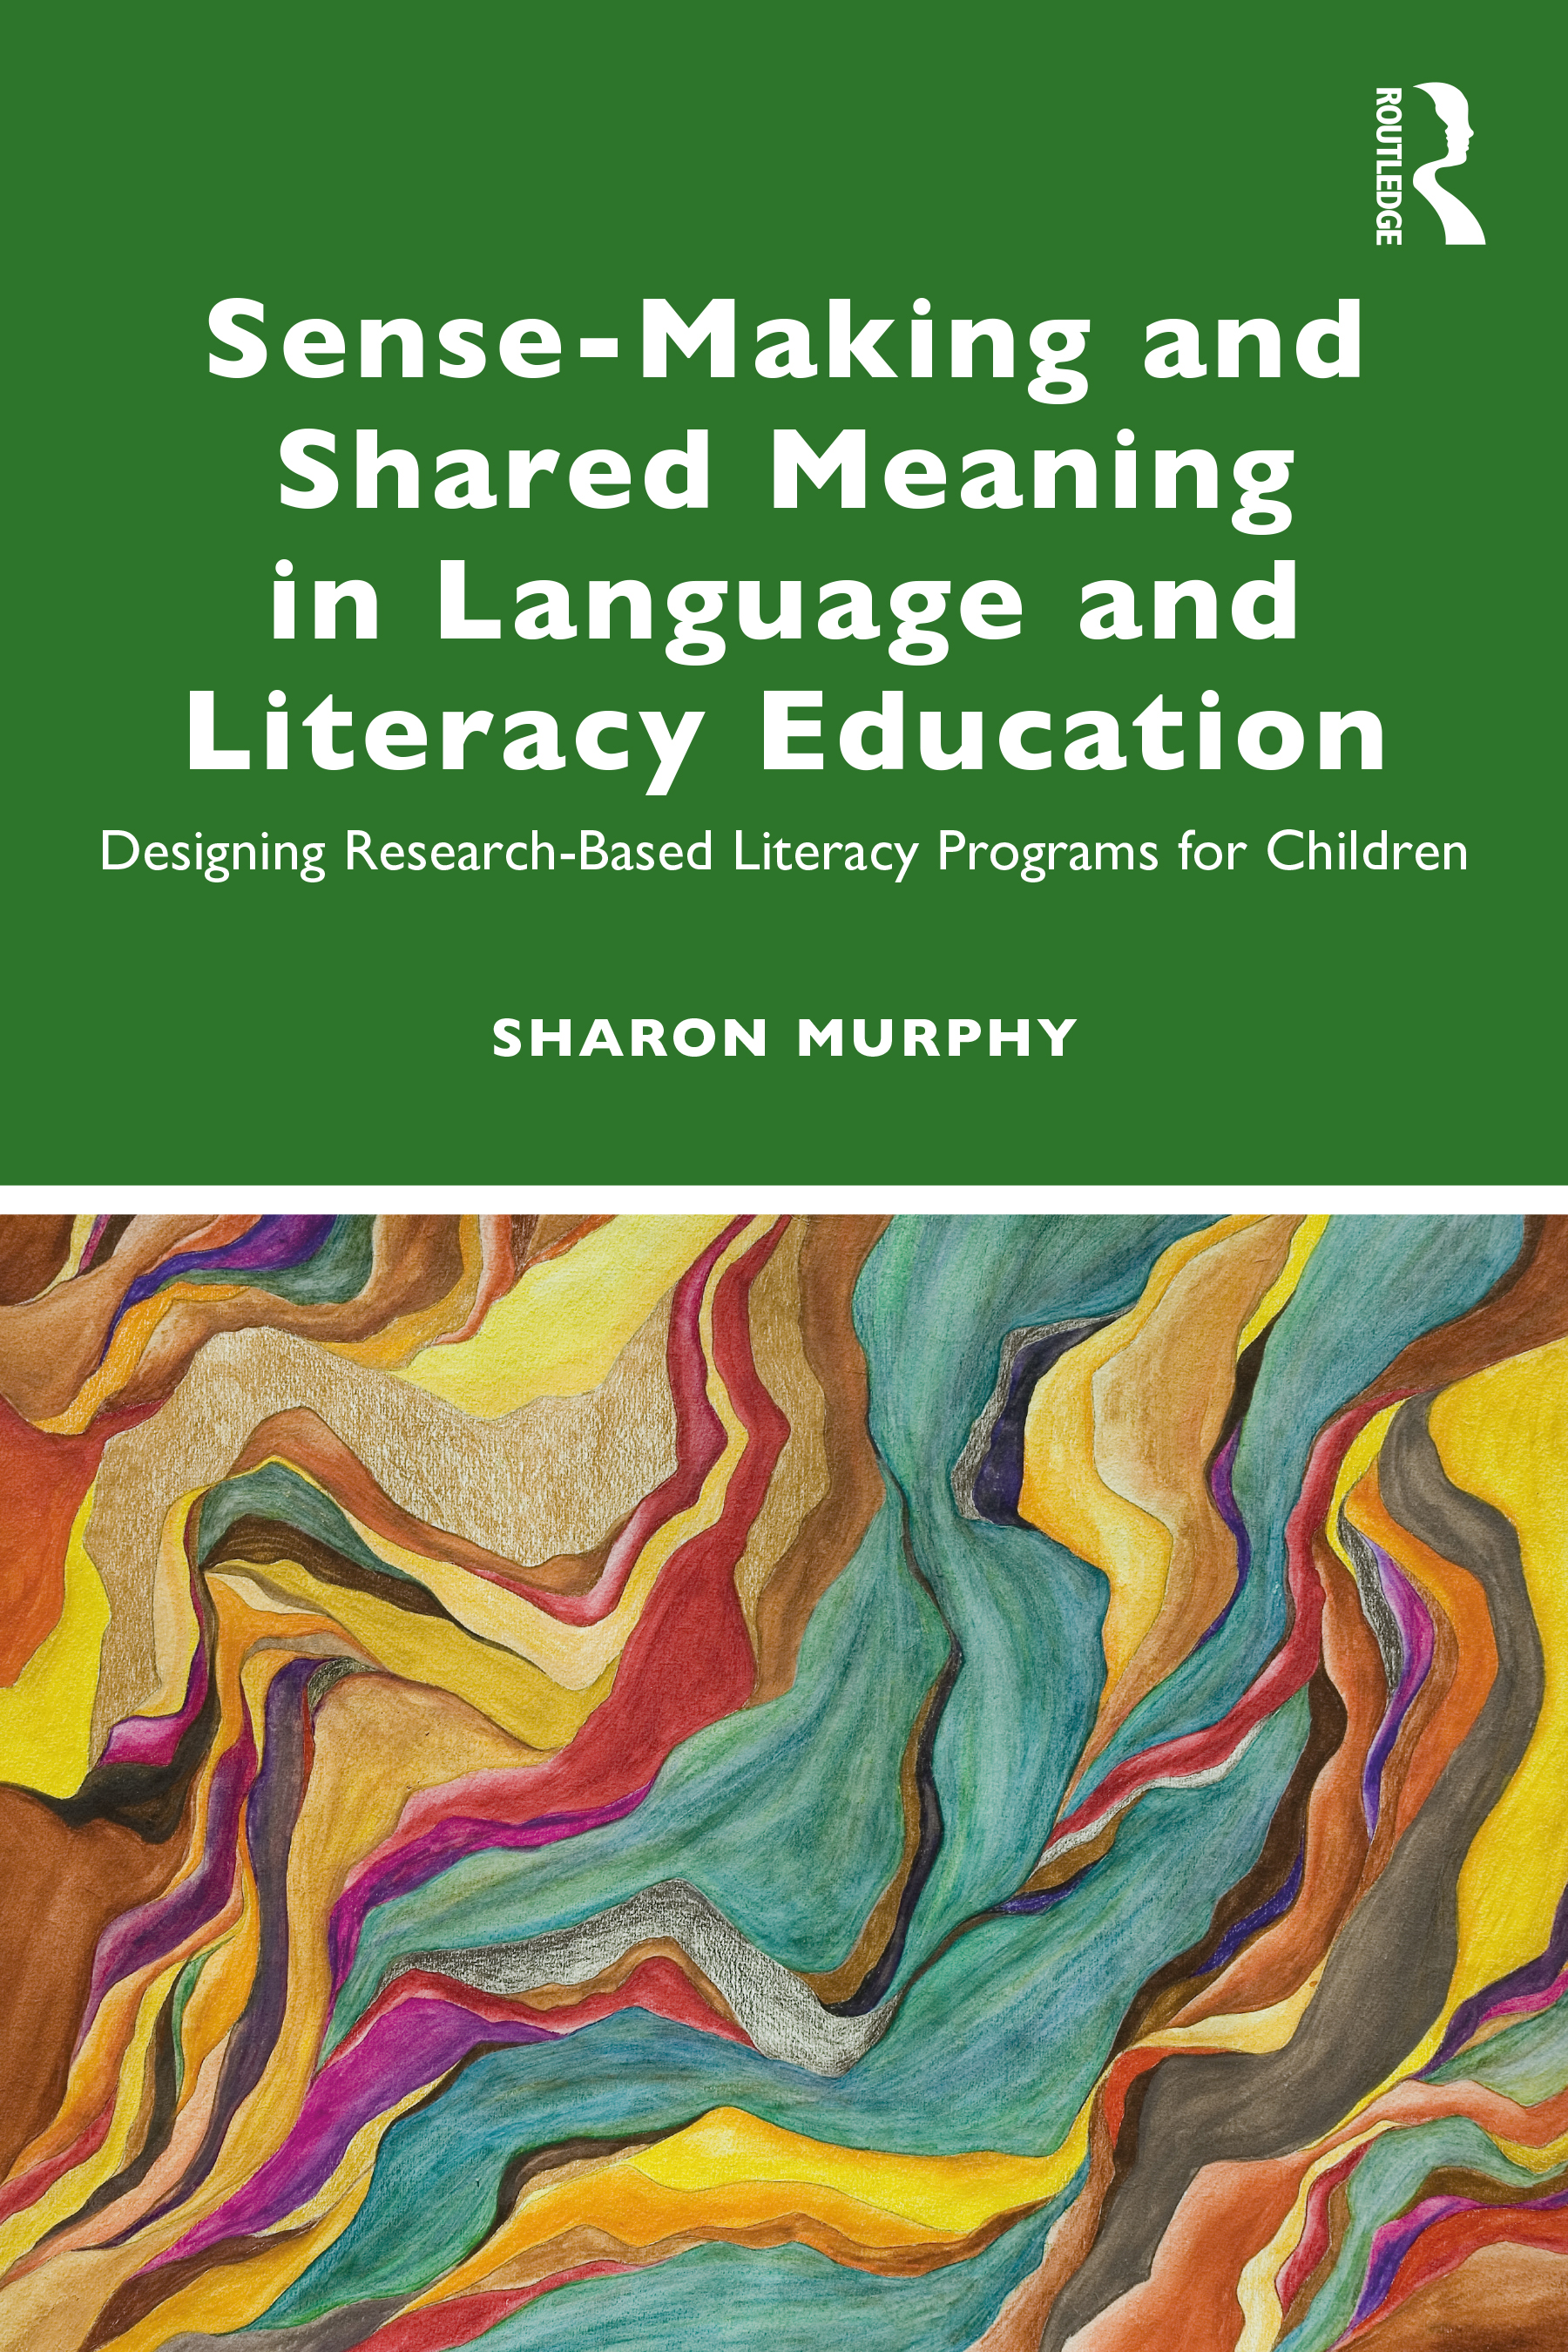 Sense-Making and Shared Meaning in Language and Literacy Education: Designing Research-Based Literacy Programs for Children book cover